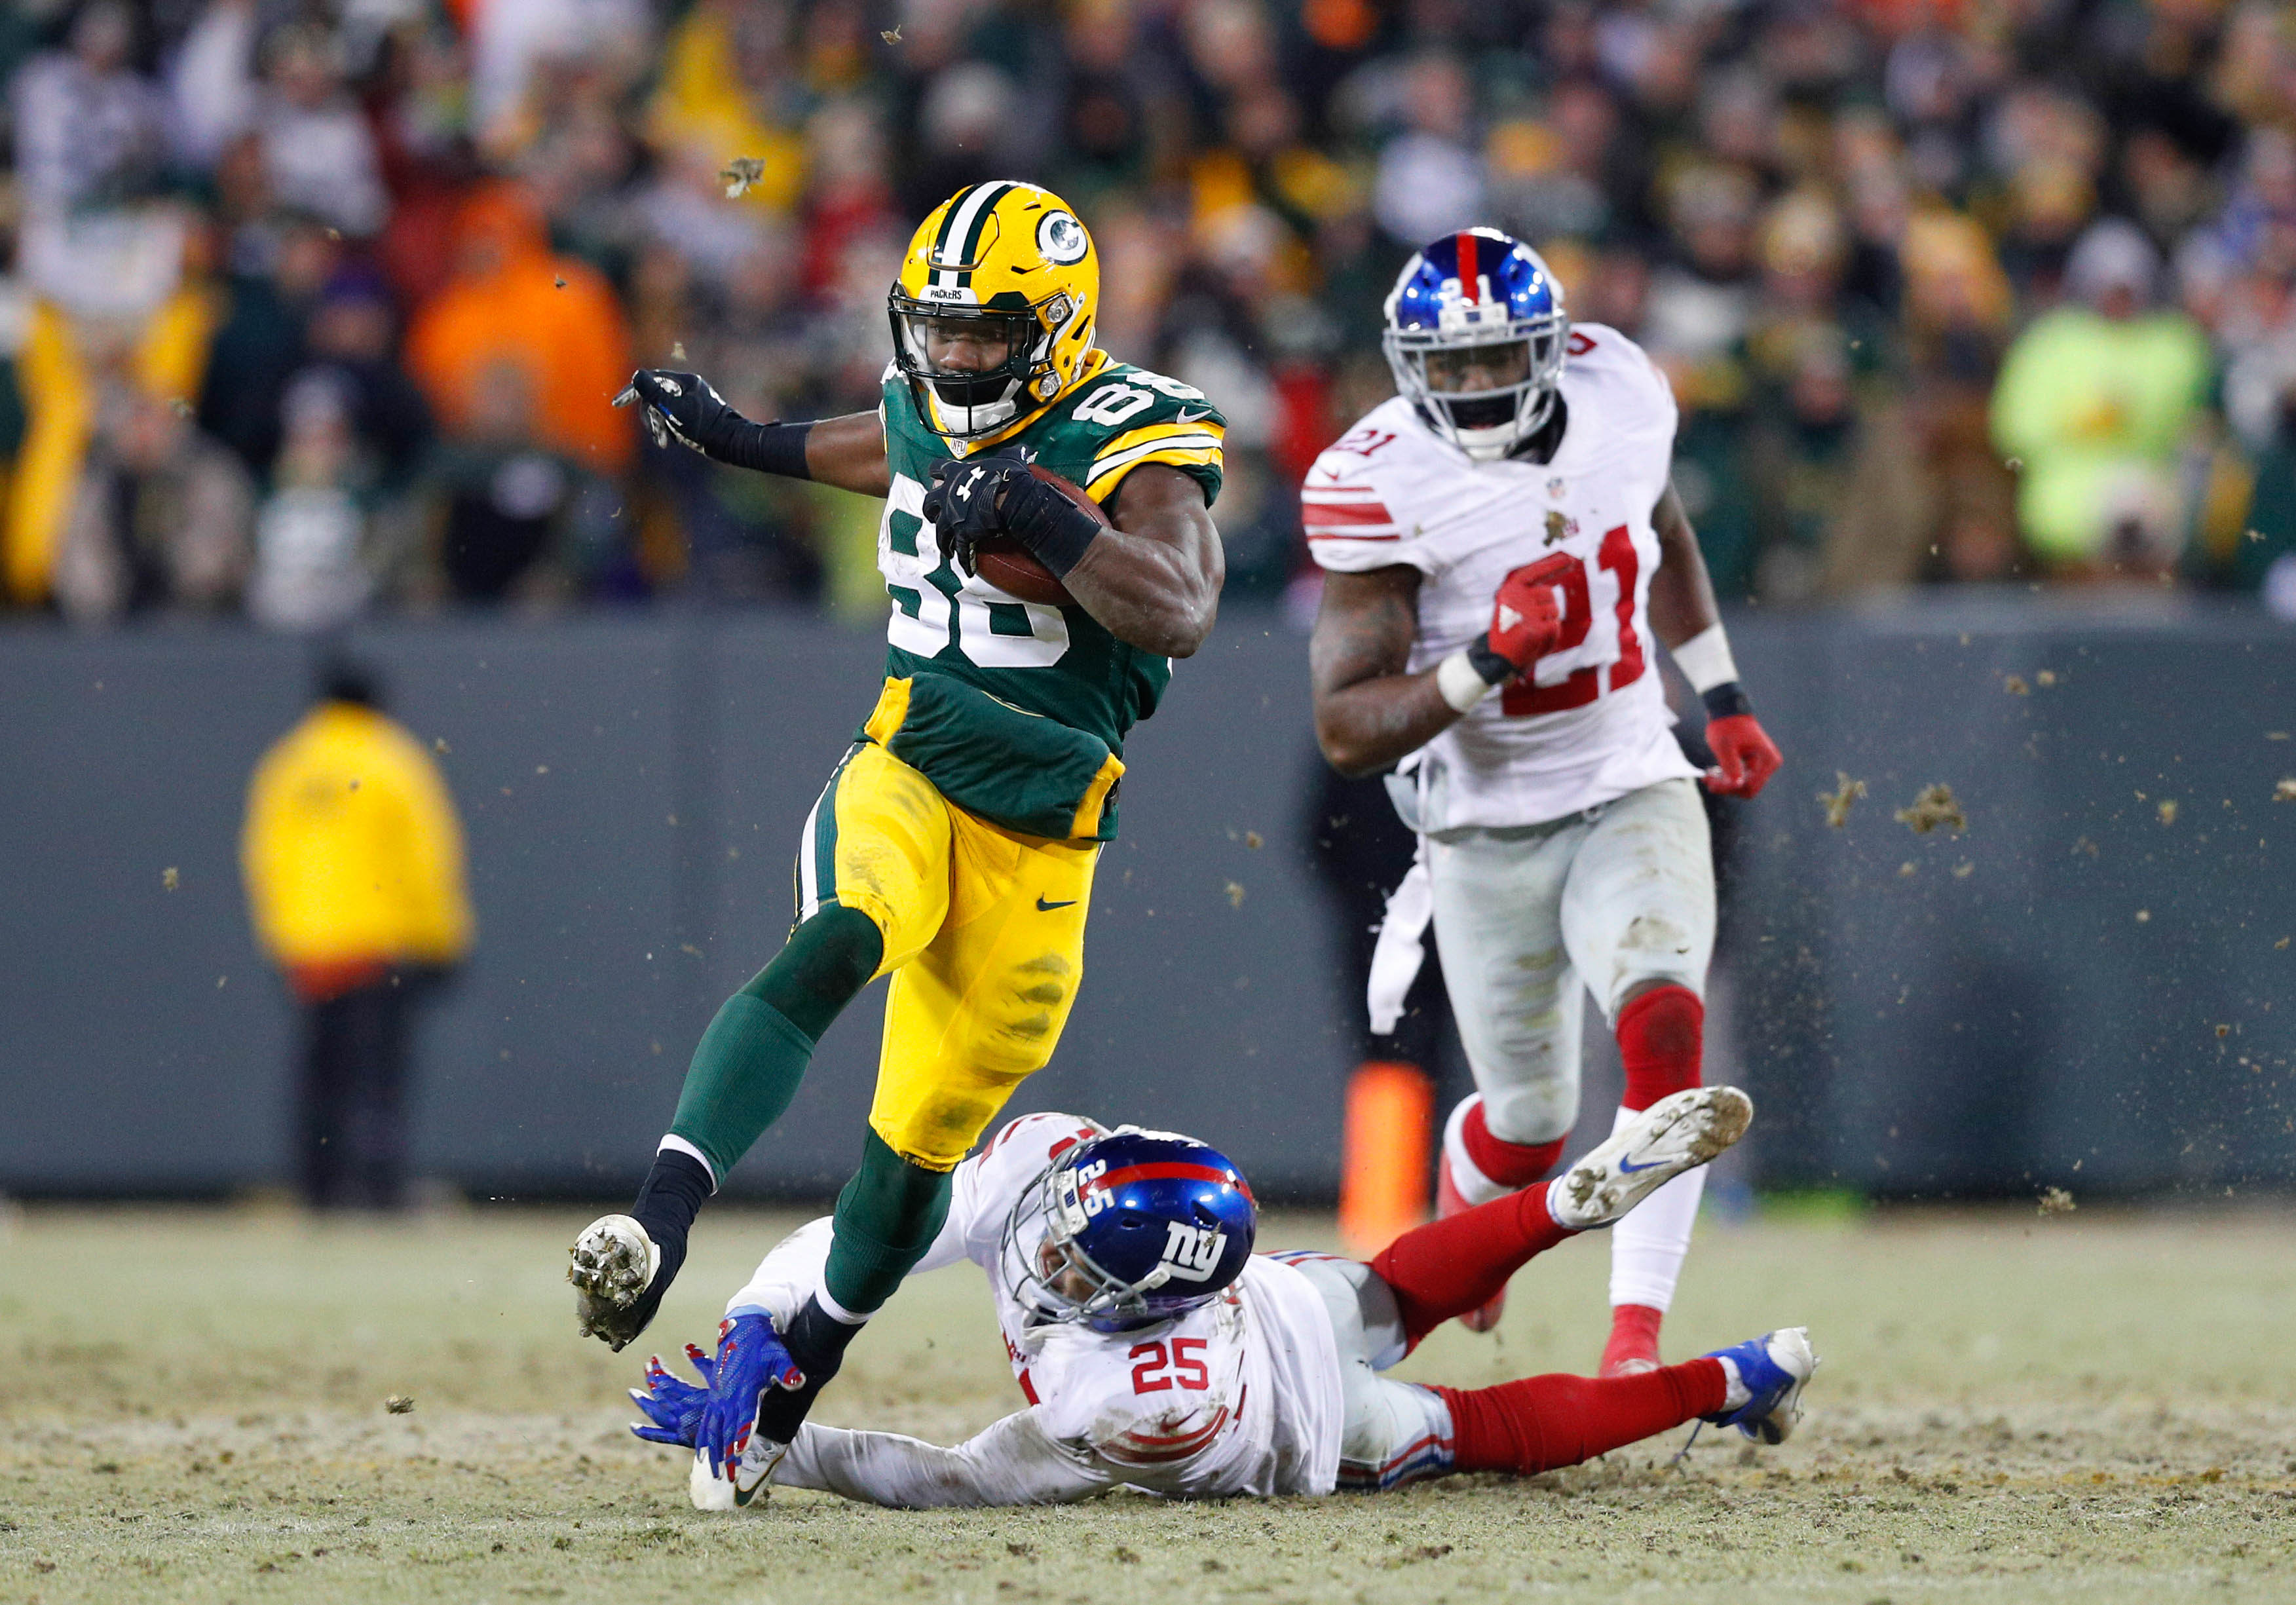 9823868-nfl-nfc-wild-card-new-york-giants-at-green-bay-packers